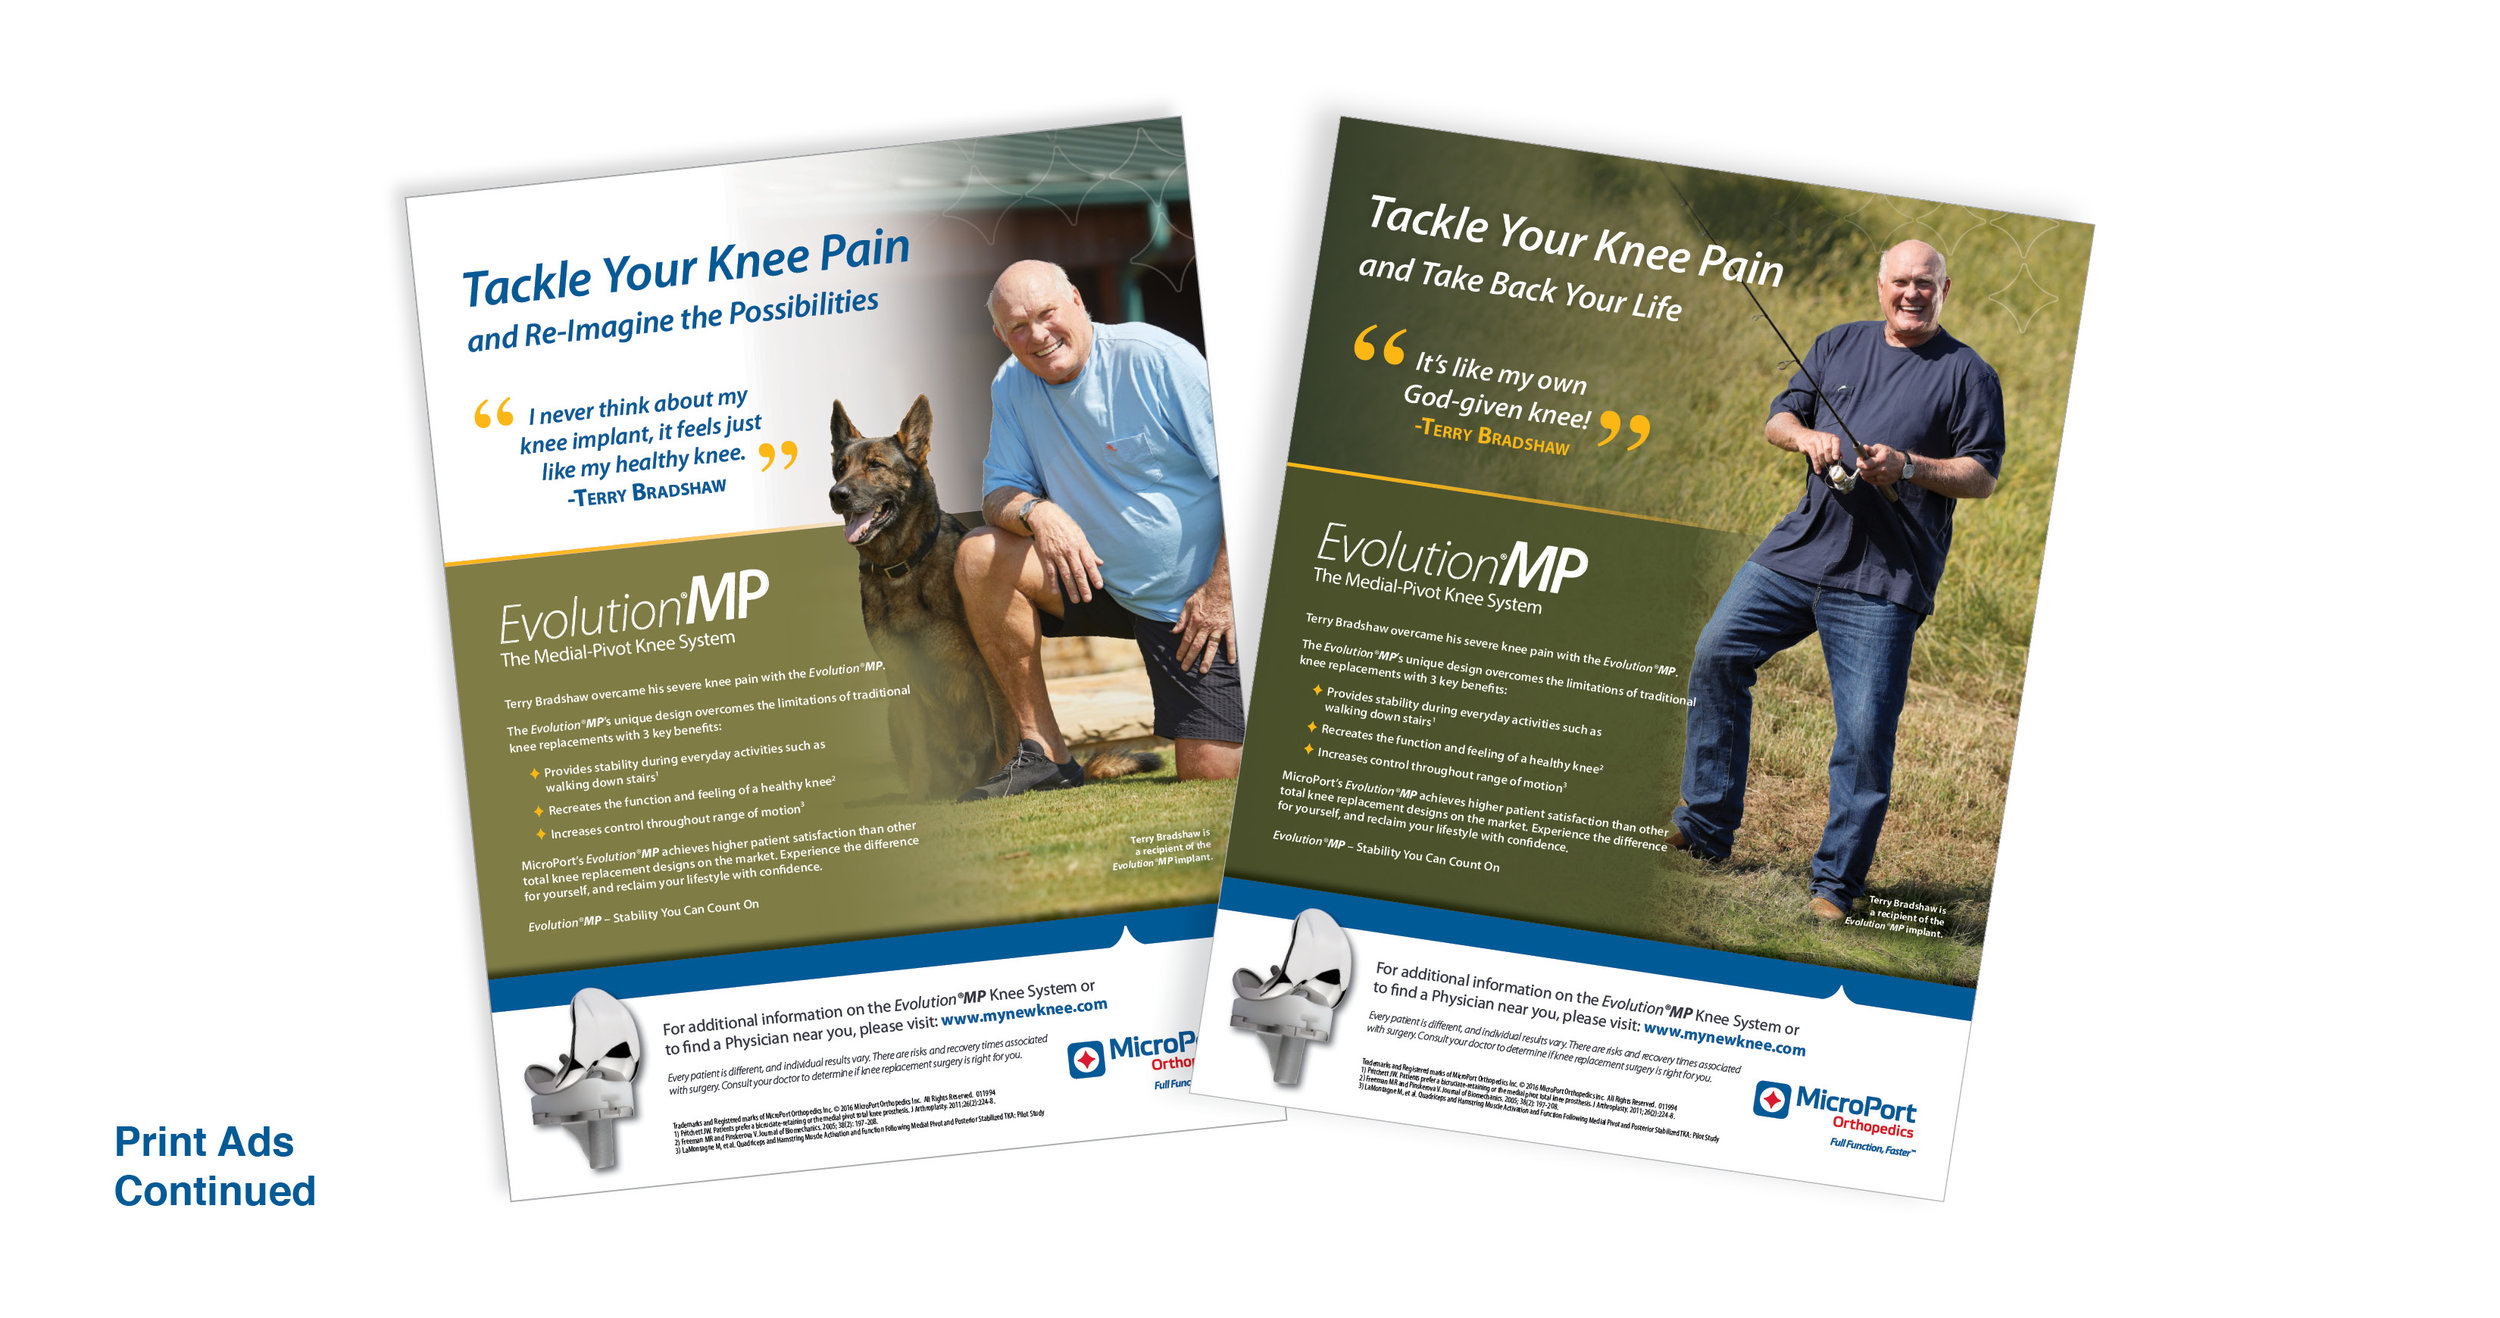 MicroPort: EvolutionMP Patient Marketing Campaign: Print Ads